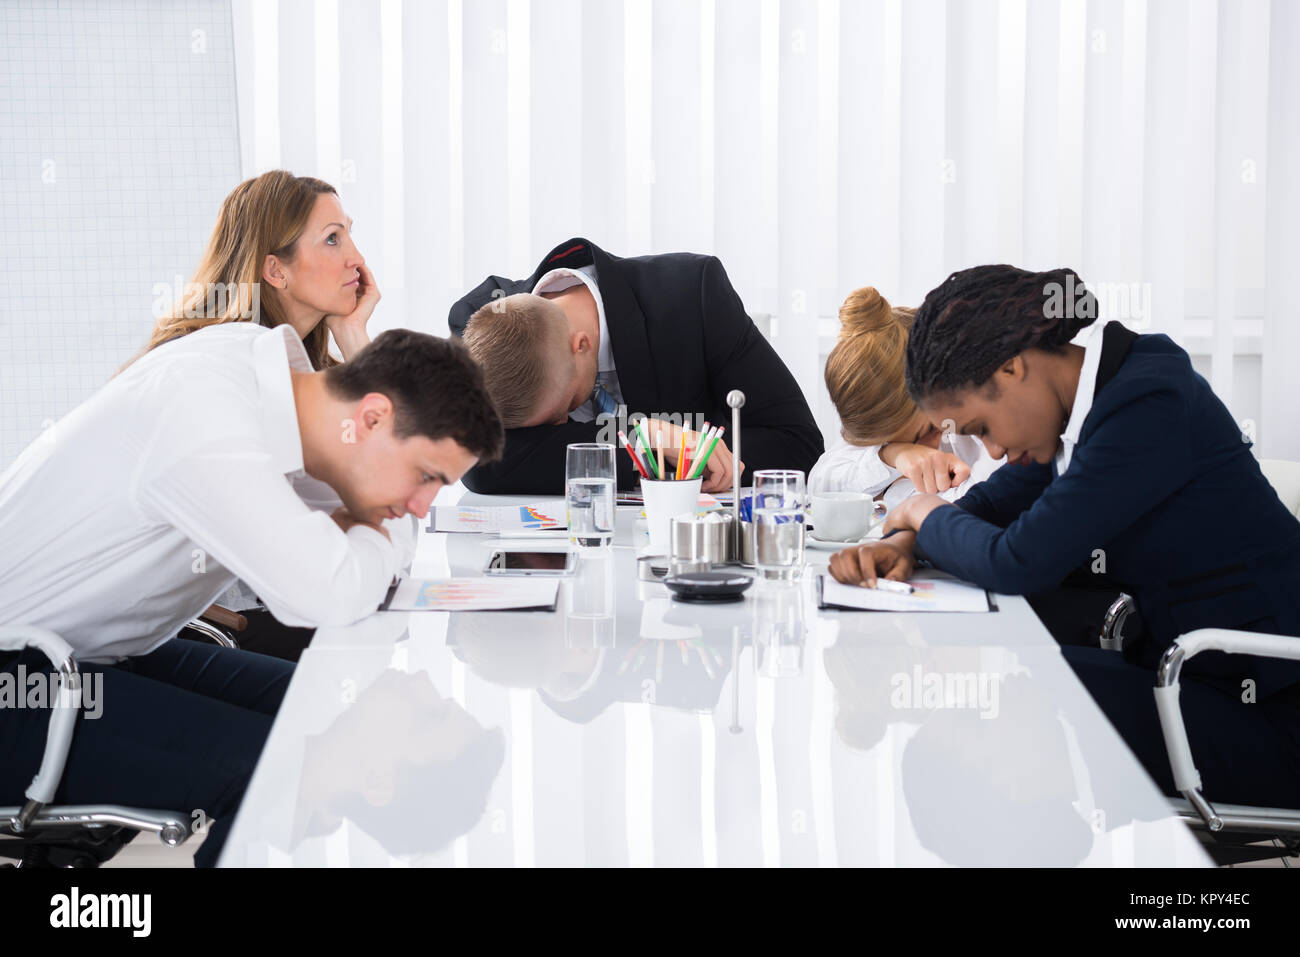 Businesspeople Sitting In Business Meeting - Stock Image